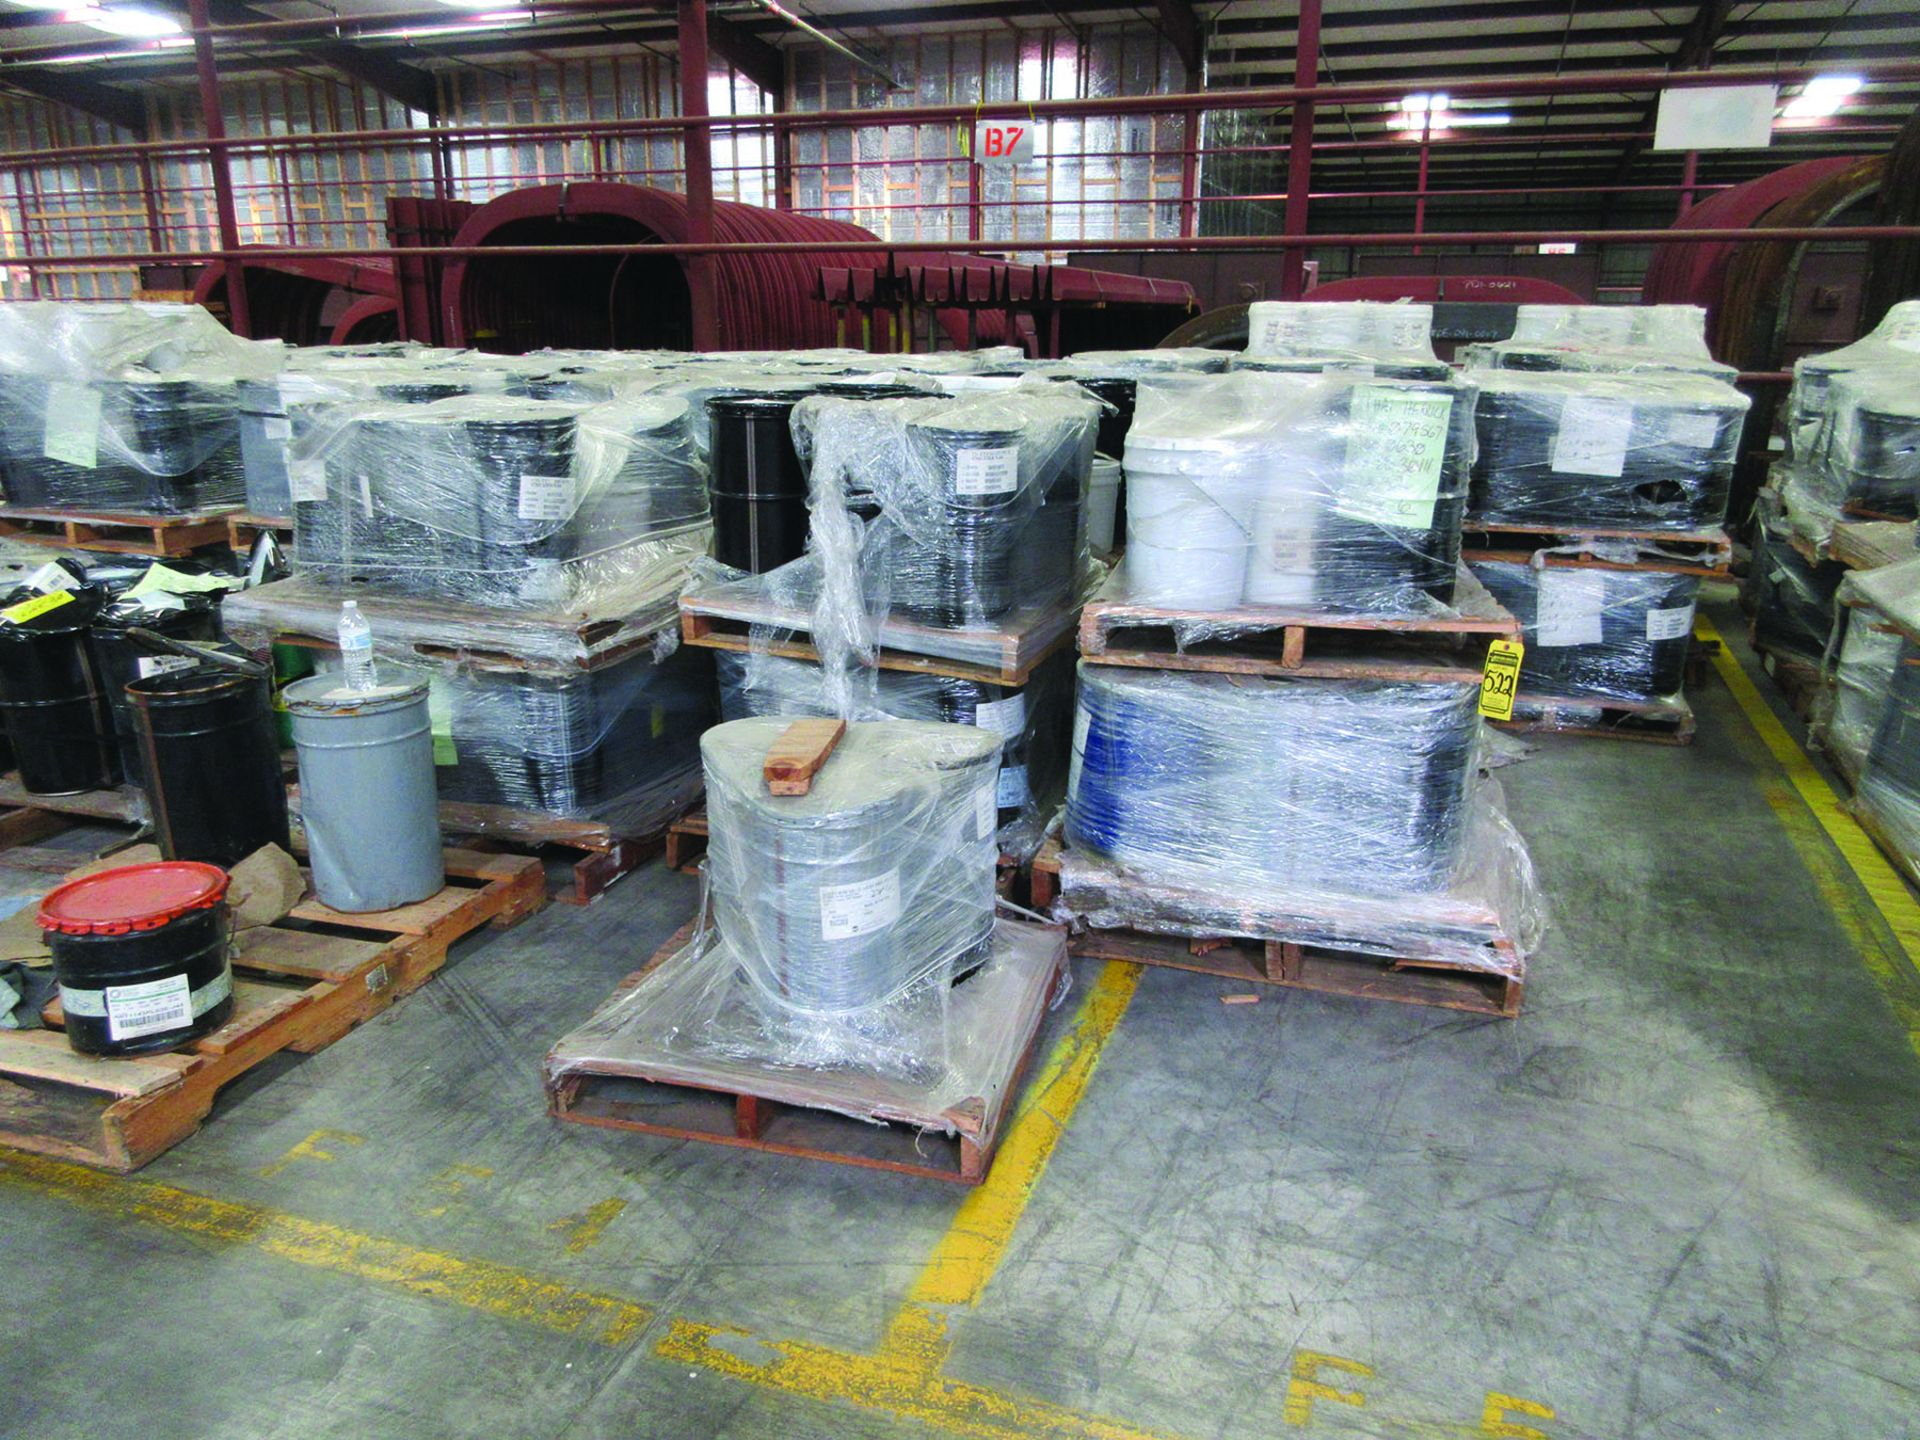 (80 +/-) PALLETS OF STRUCTURAL SCREWS, WASHERS, NUTS, GRID B7 - Image 5 of 5